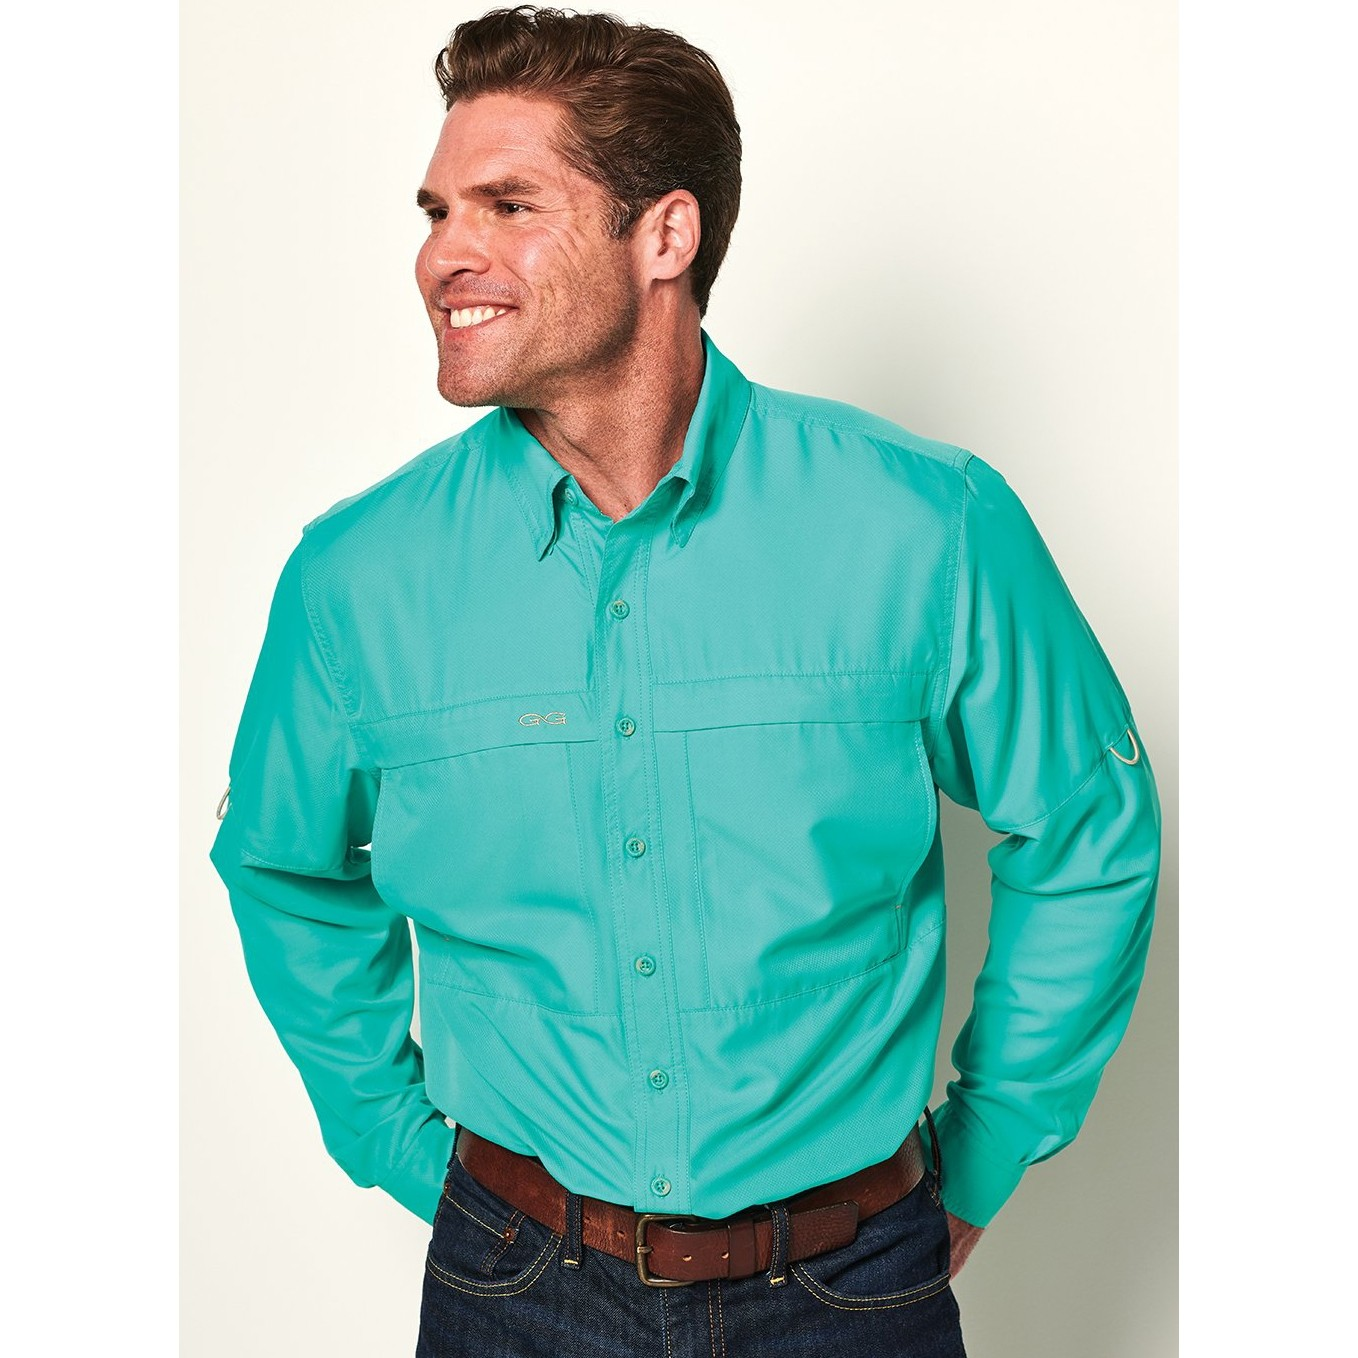 GameGuard Men's Caribbean MicroFiber Long Sleeve Shirt